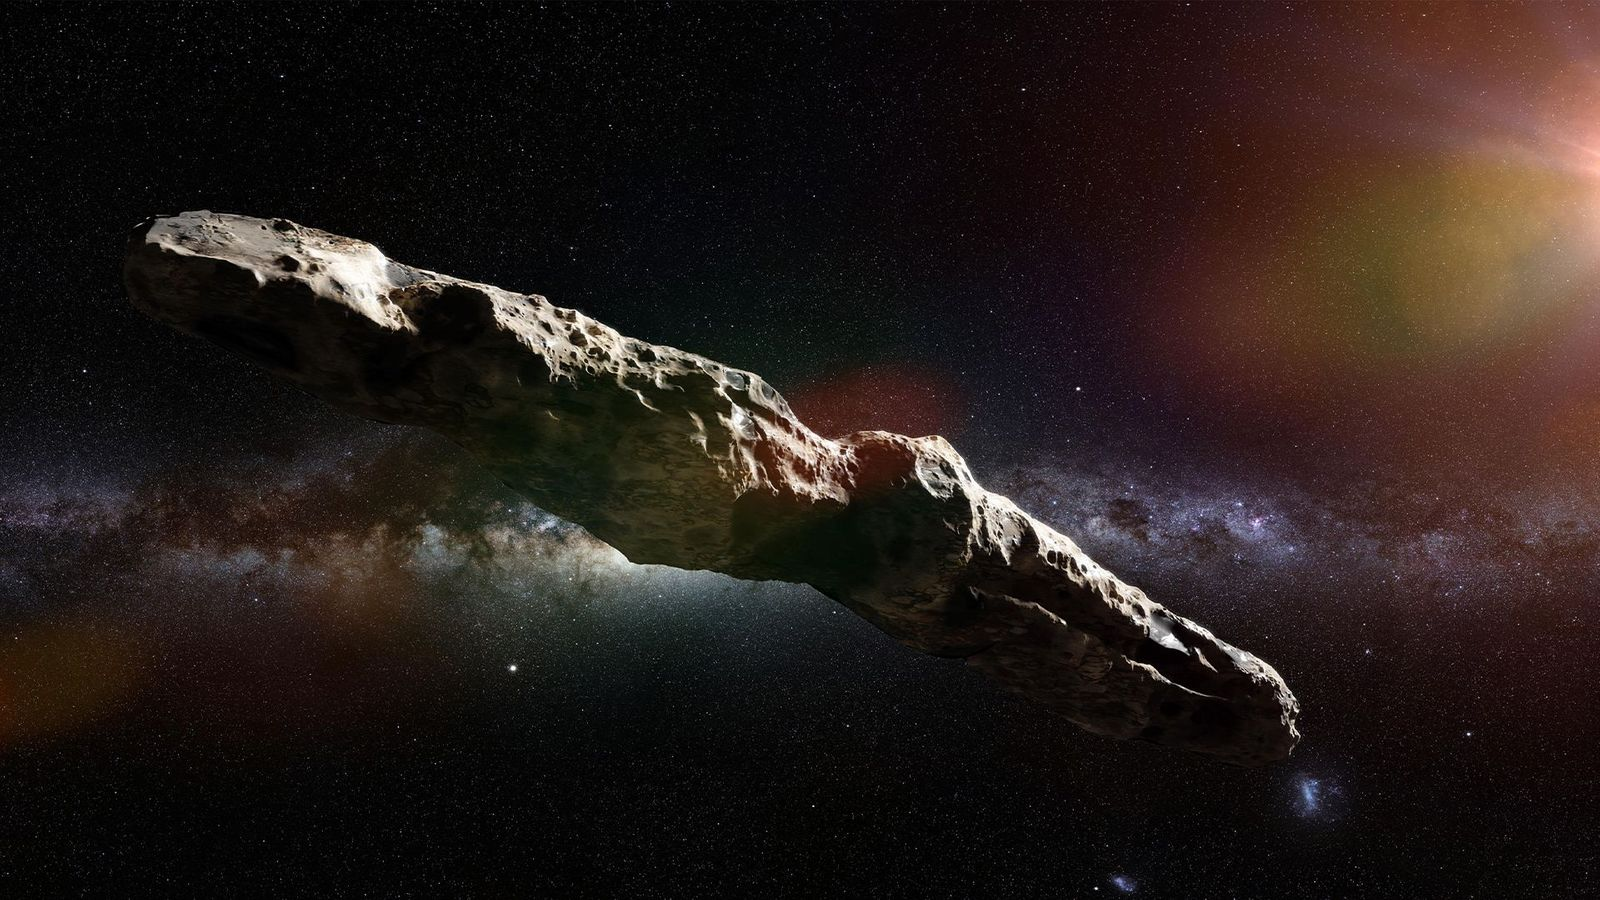 An artist's impression of the alien object 'Oumuamua (Credit: Alamy)